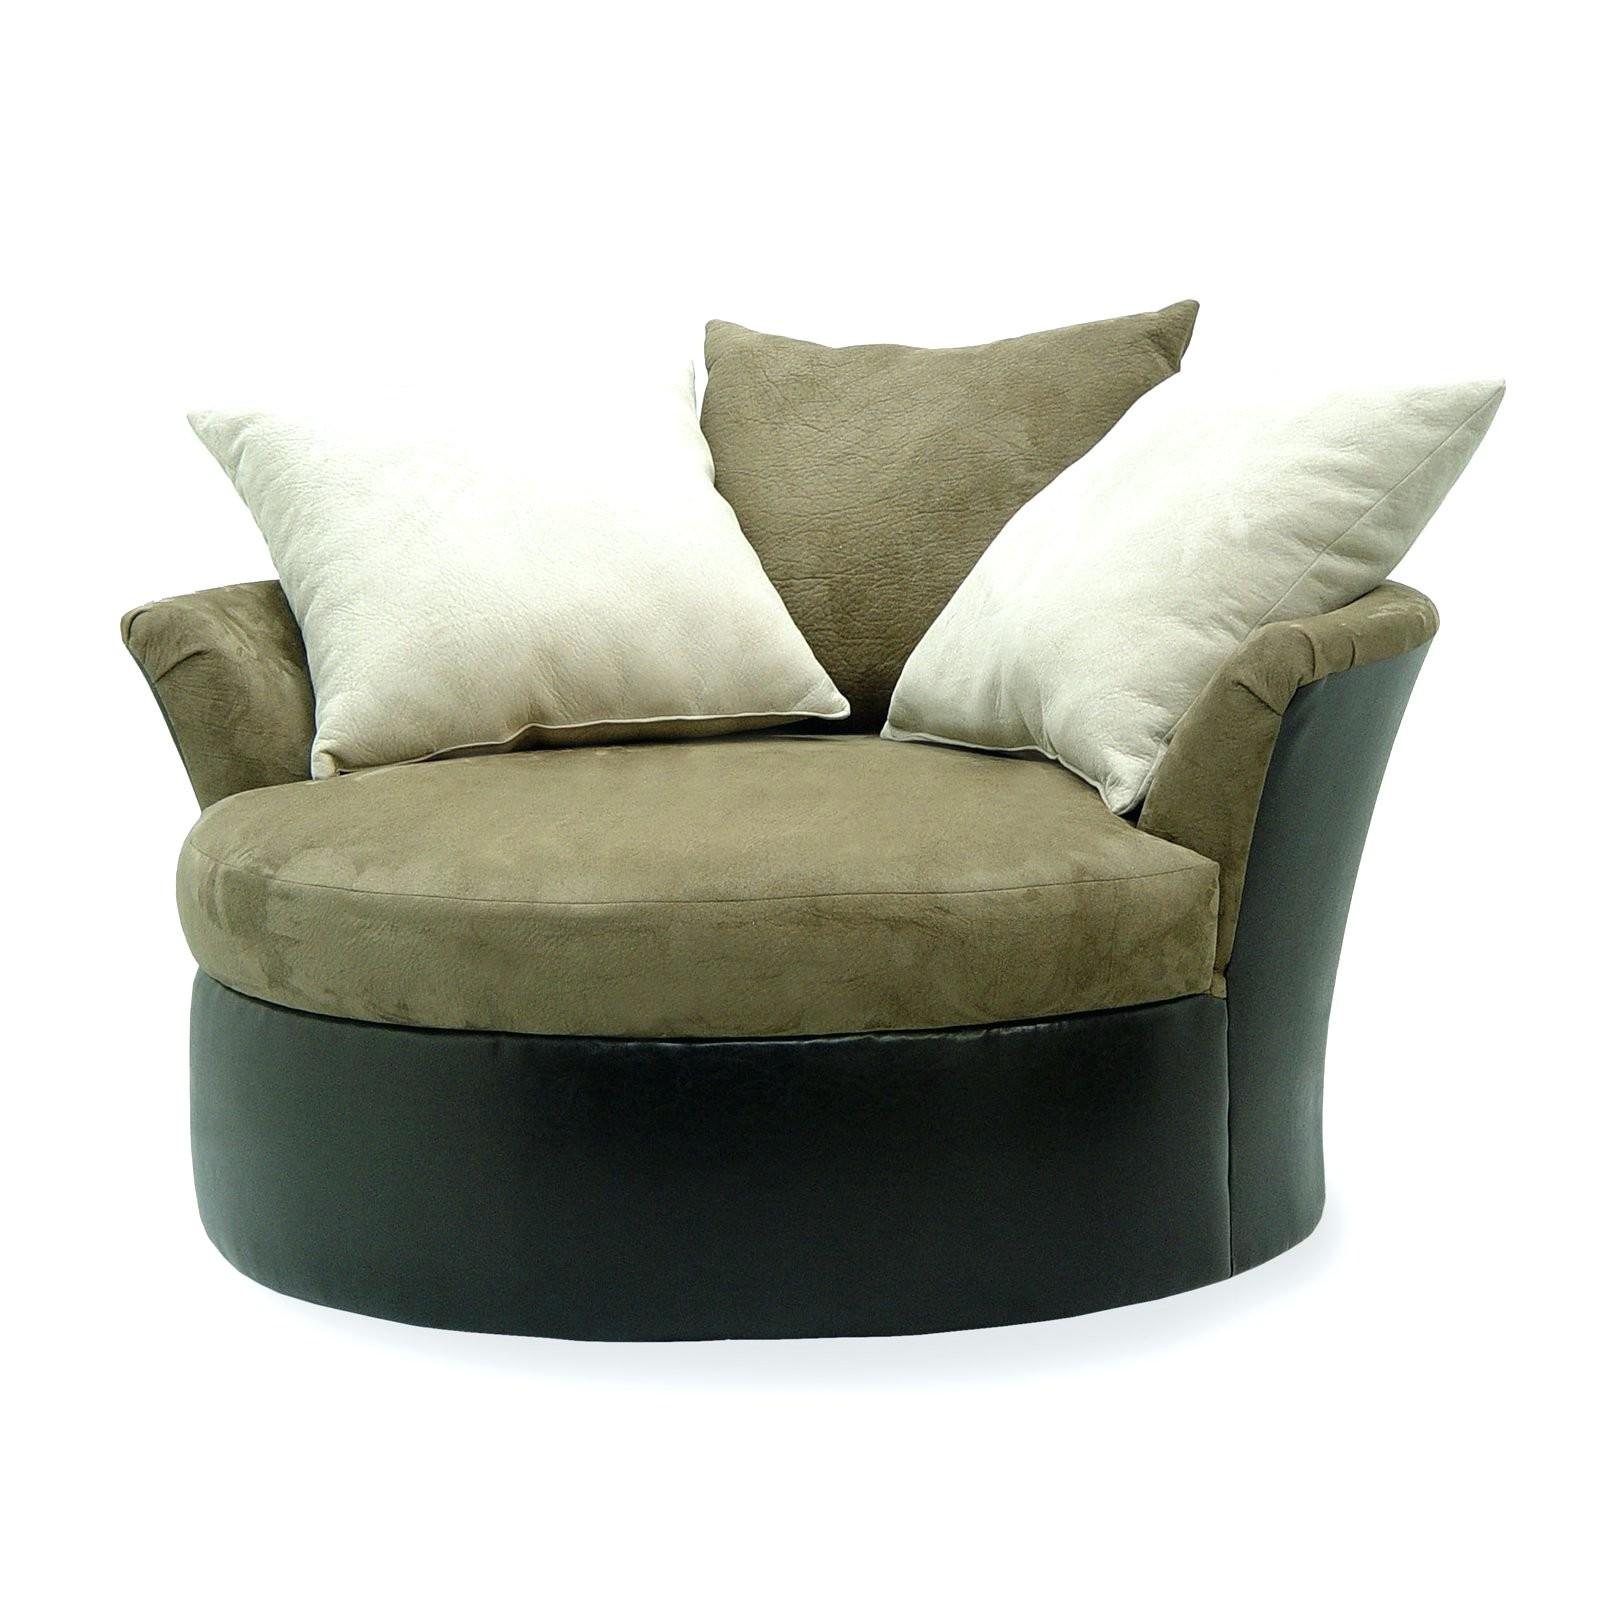 Modern Chaise Lounge Chair Mariaalcocer